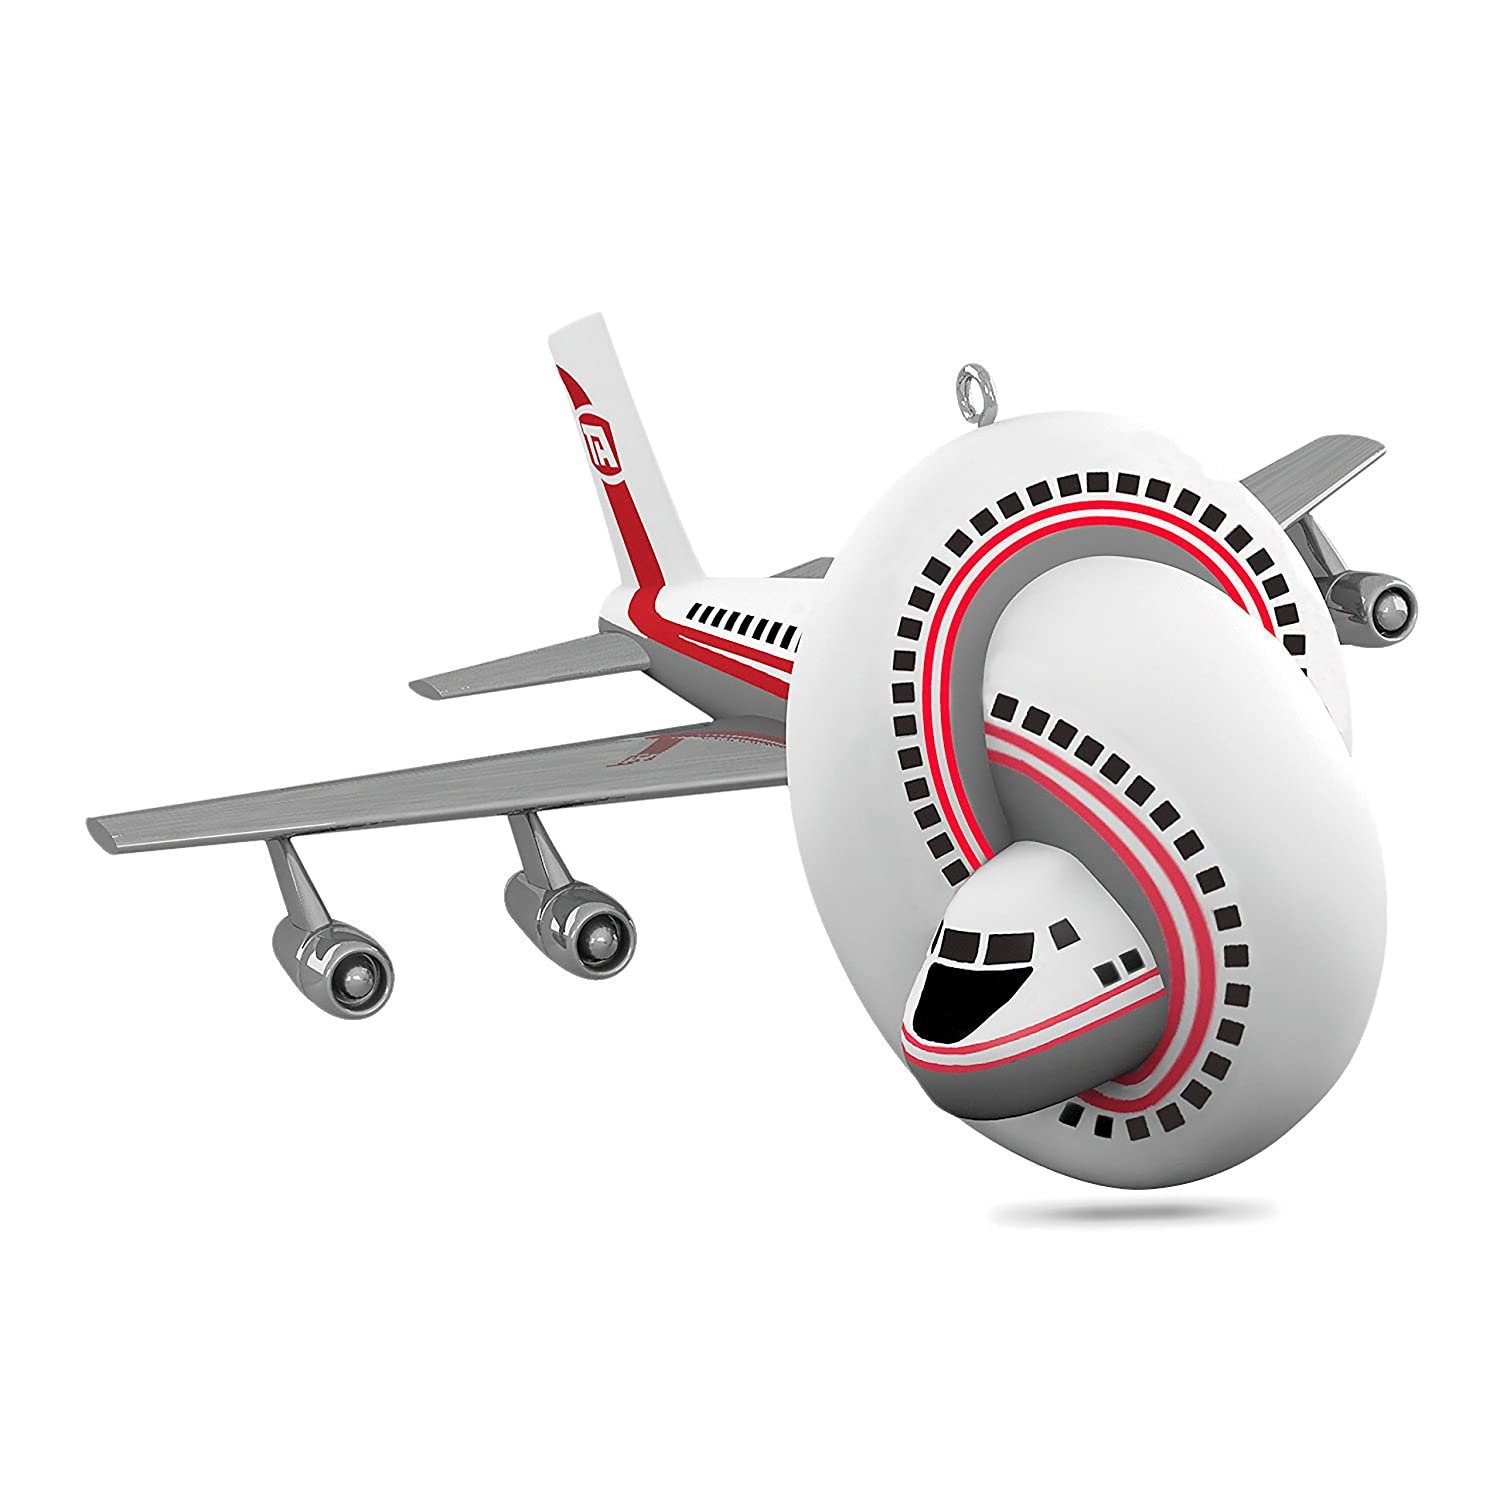 Hallmark Keepsake 2017 Airplane! The Movie Sound Christmas Ornament Hallmark Cards 1795QXI1502